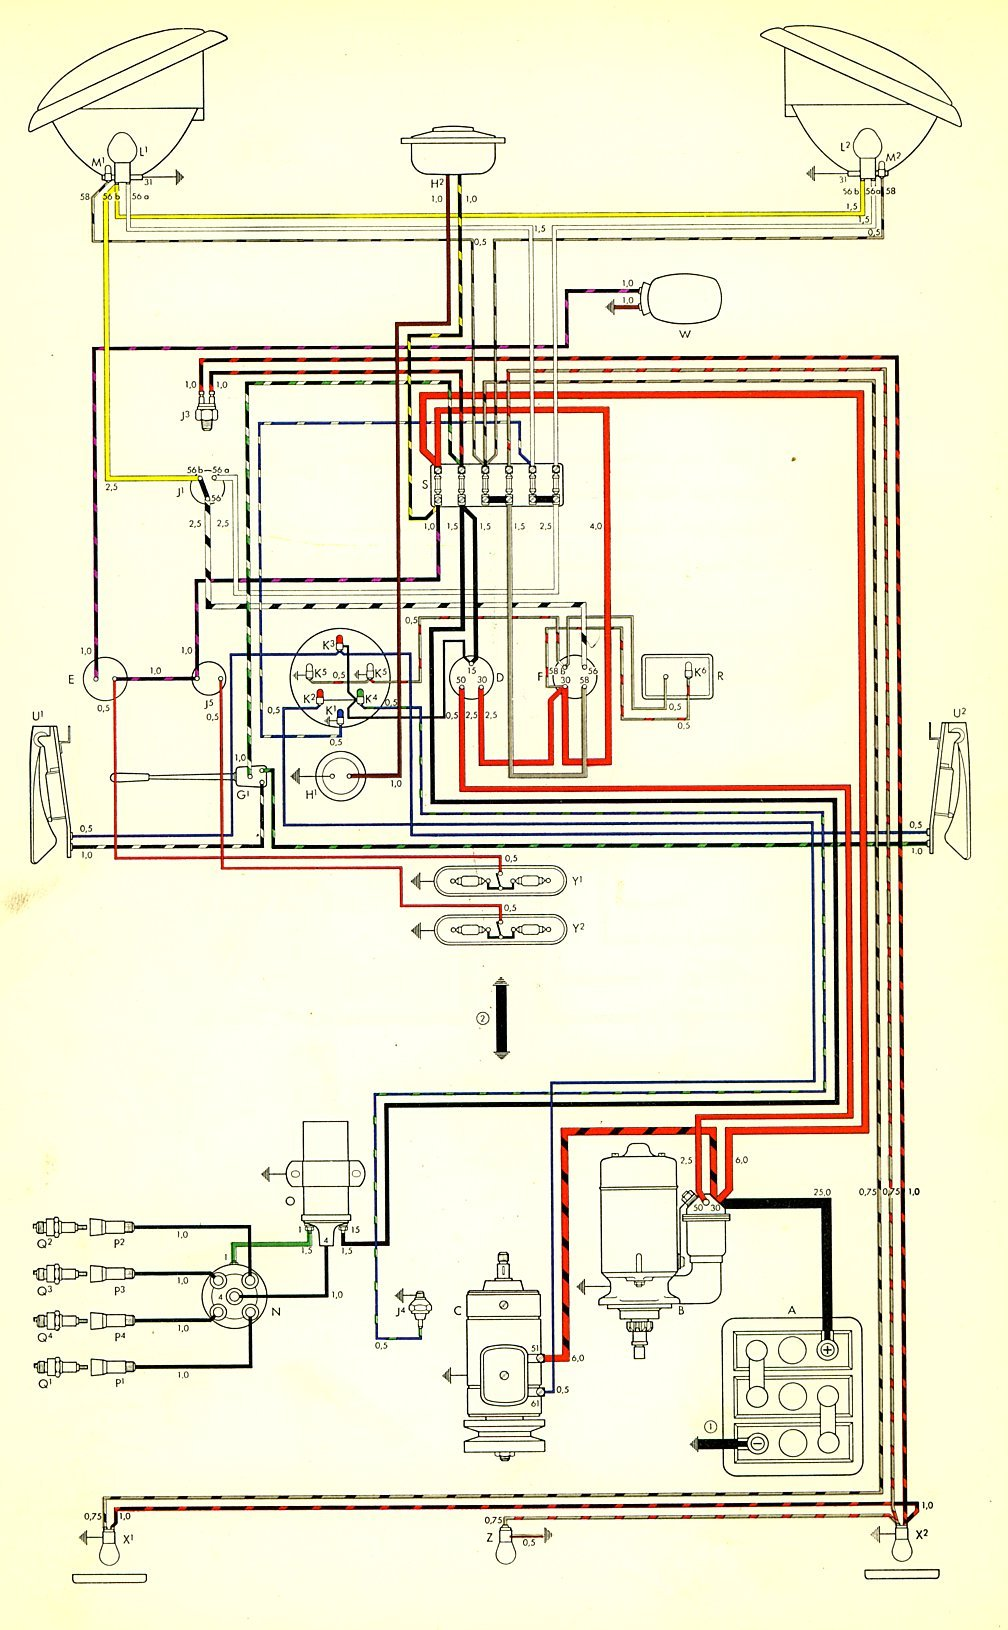 Wiring Diagram For Zig Cf9 : Zig unit wiring diagram all what is a daisy chain aluminum